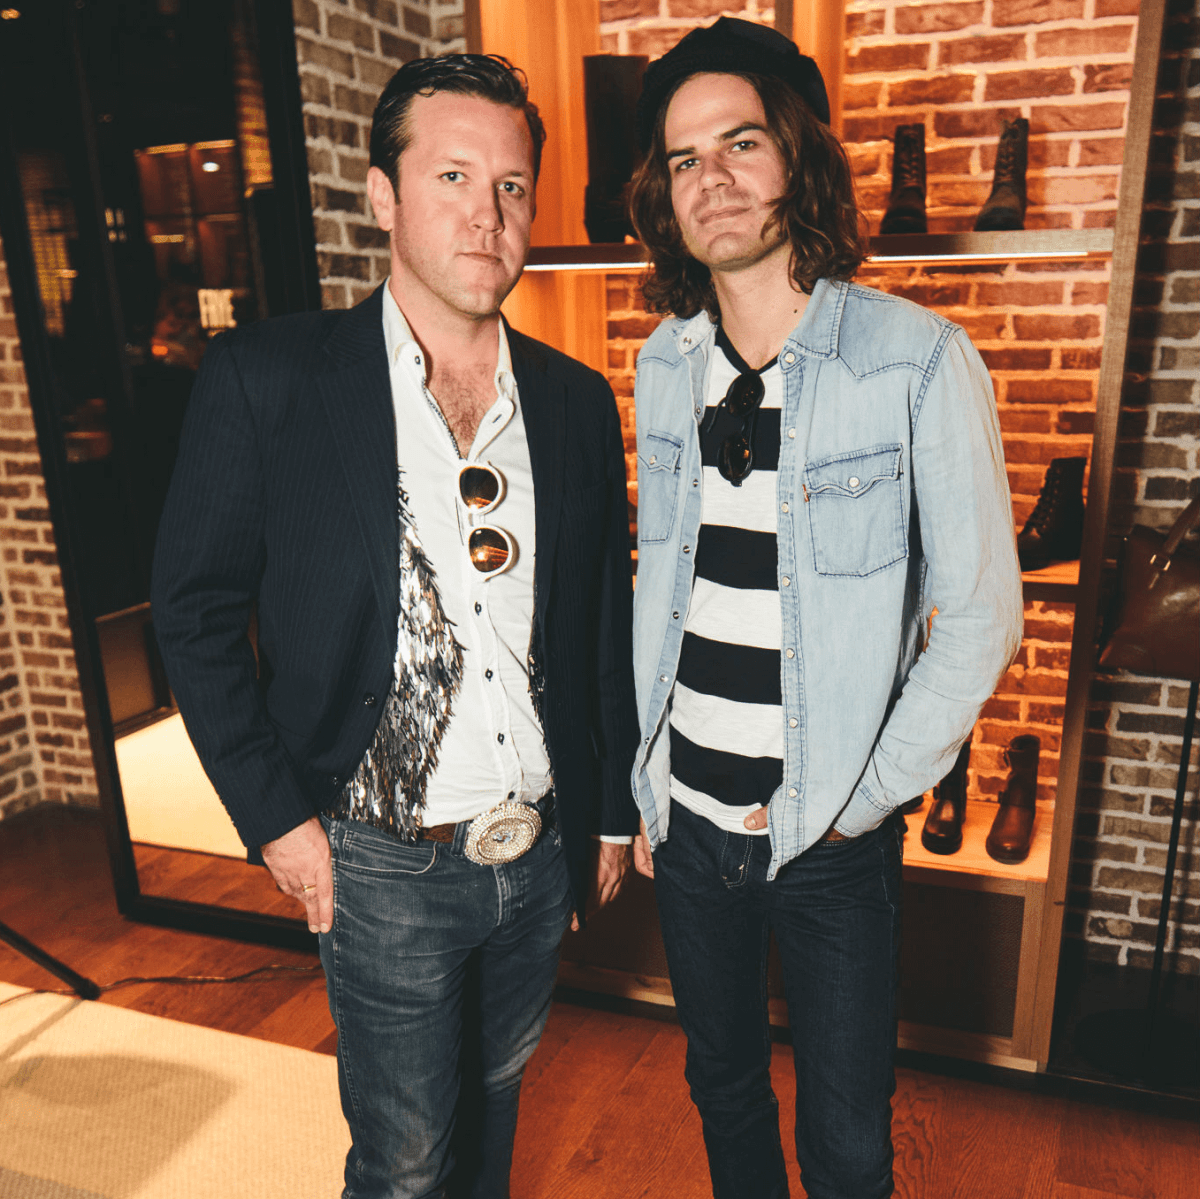 The Frye Company Austin grand opening 2016 John Michael Schoepf Caleb Charles Campaigne